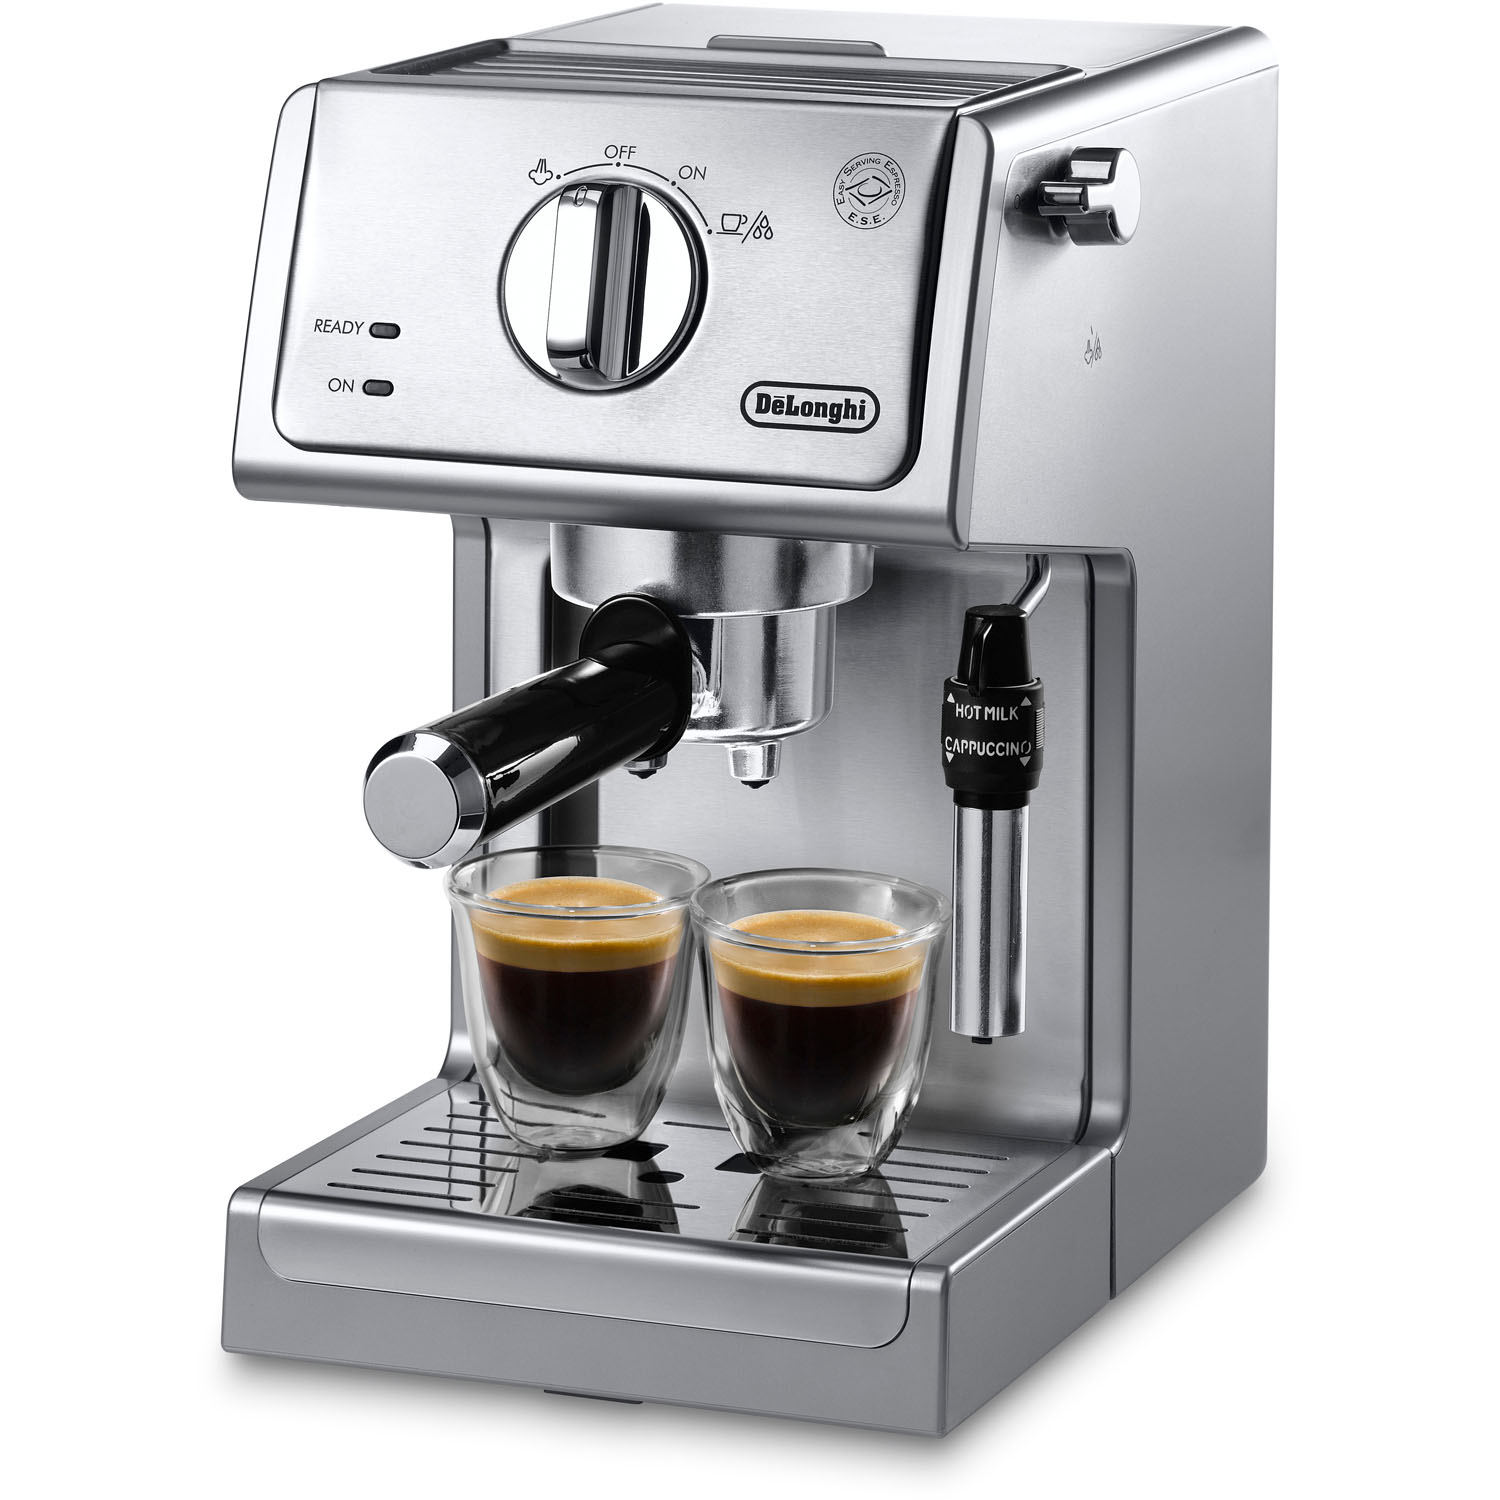 DeLONGHI 15-Bar Pump Espresso and Cappuccino Machine, Adjustable Advance per EA PartNumber: 00861776000P